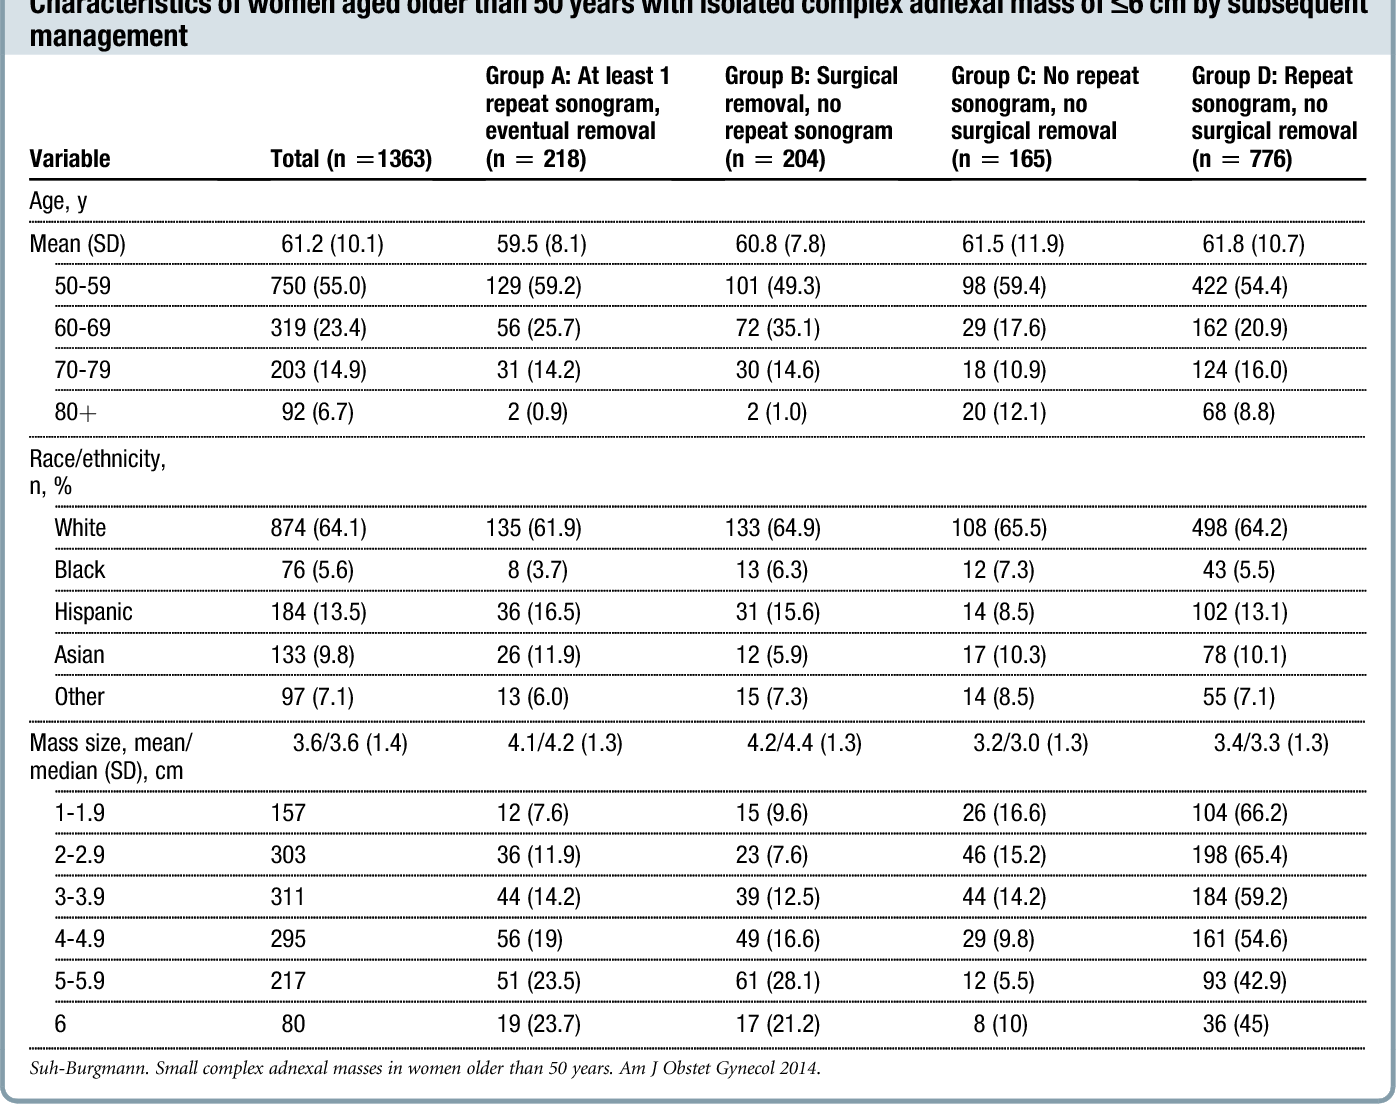 Outcomes From Ultrasound Follow Up Of Small Complex Adnexal Masses